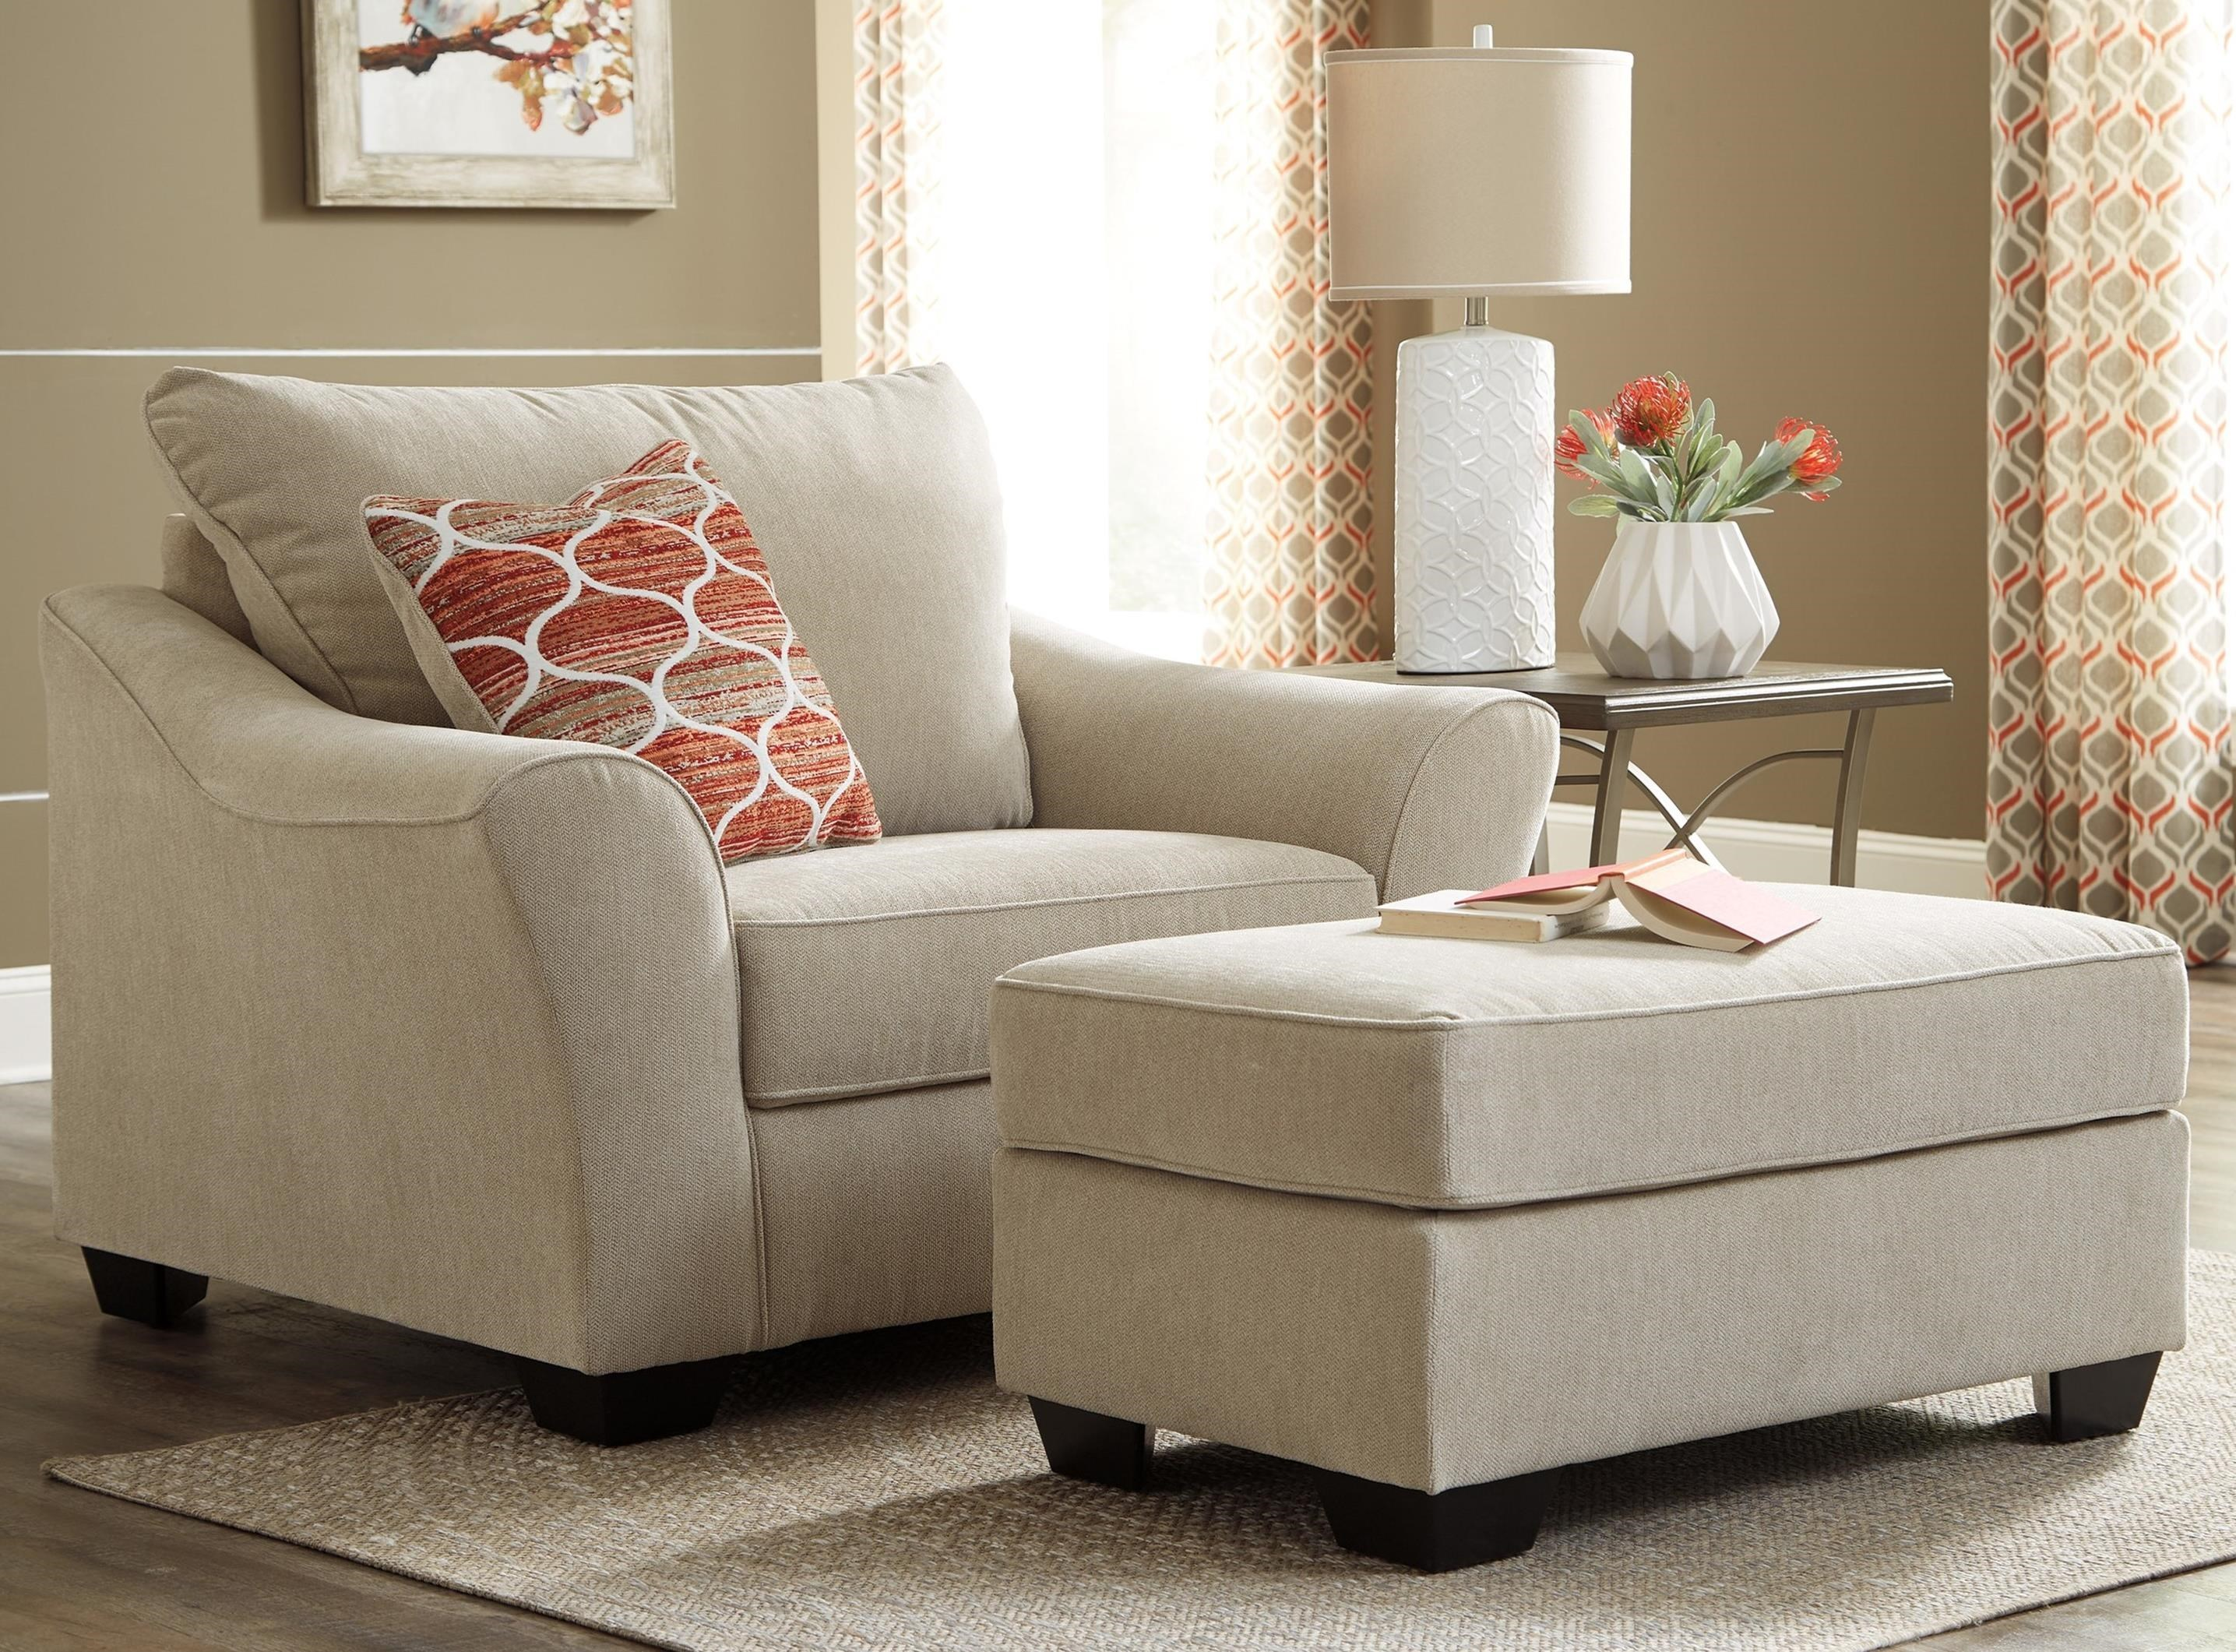 Benchcraft Lisle Nuvella Chair and a Half & Ottoman in Performance